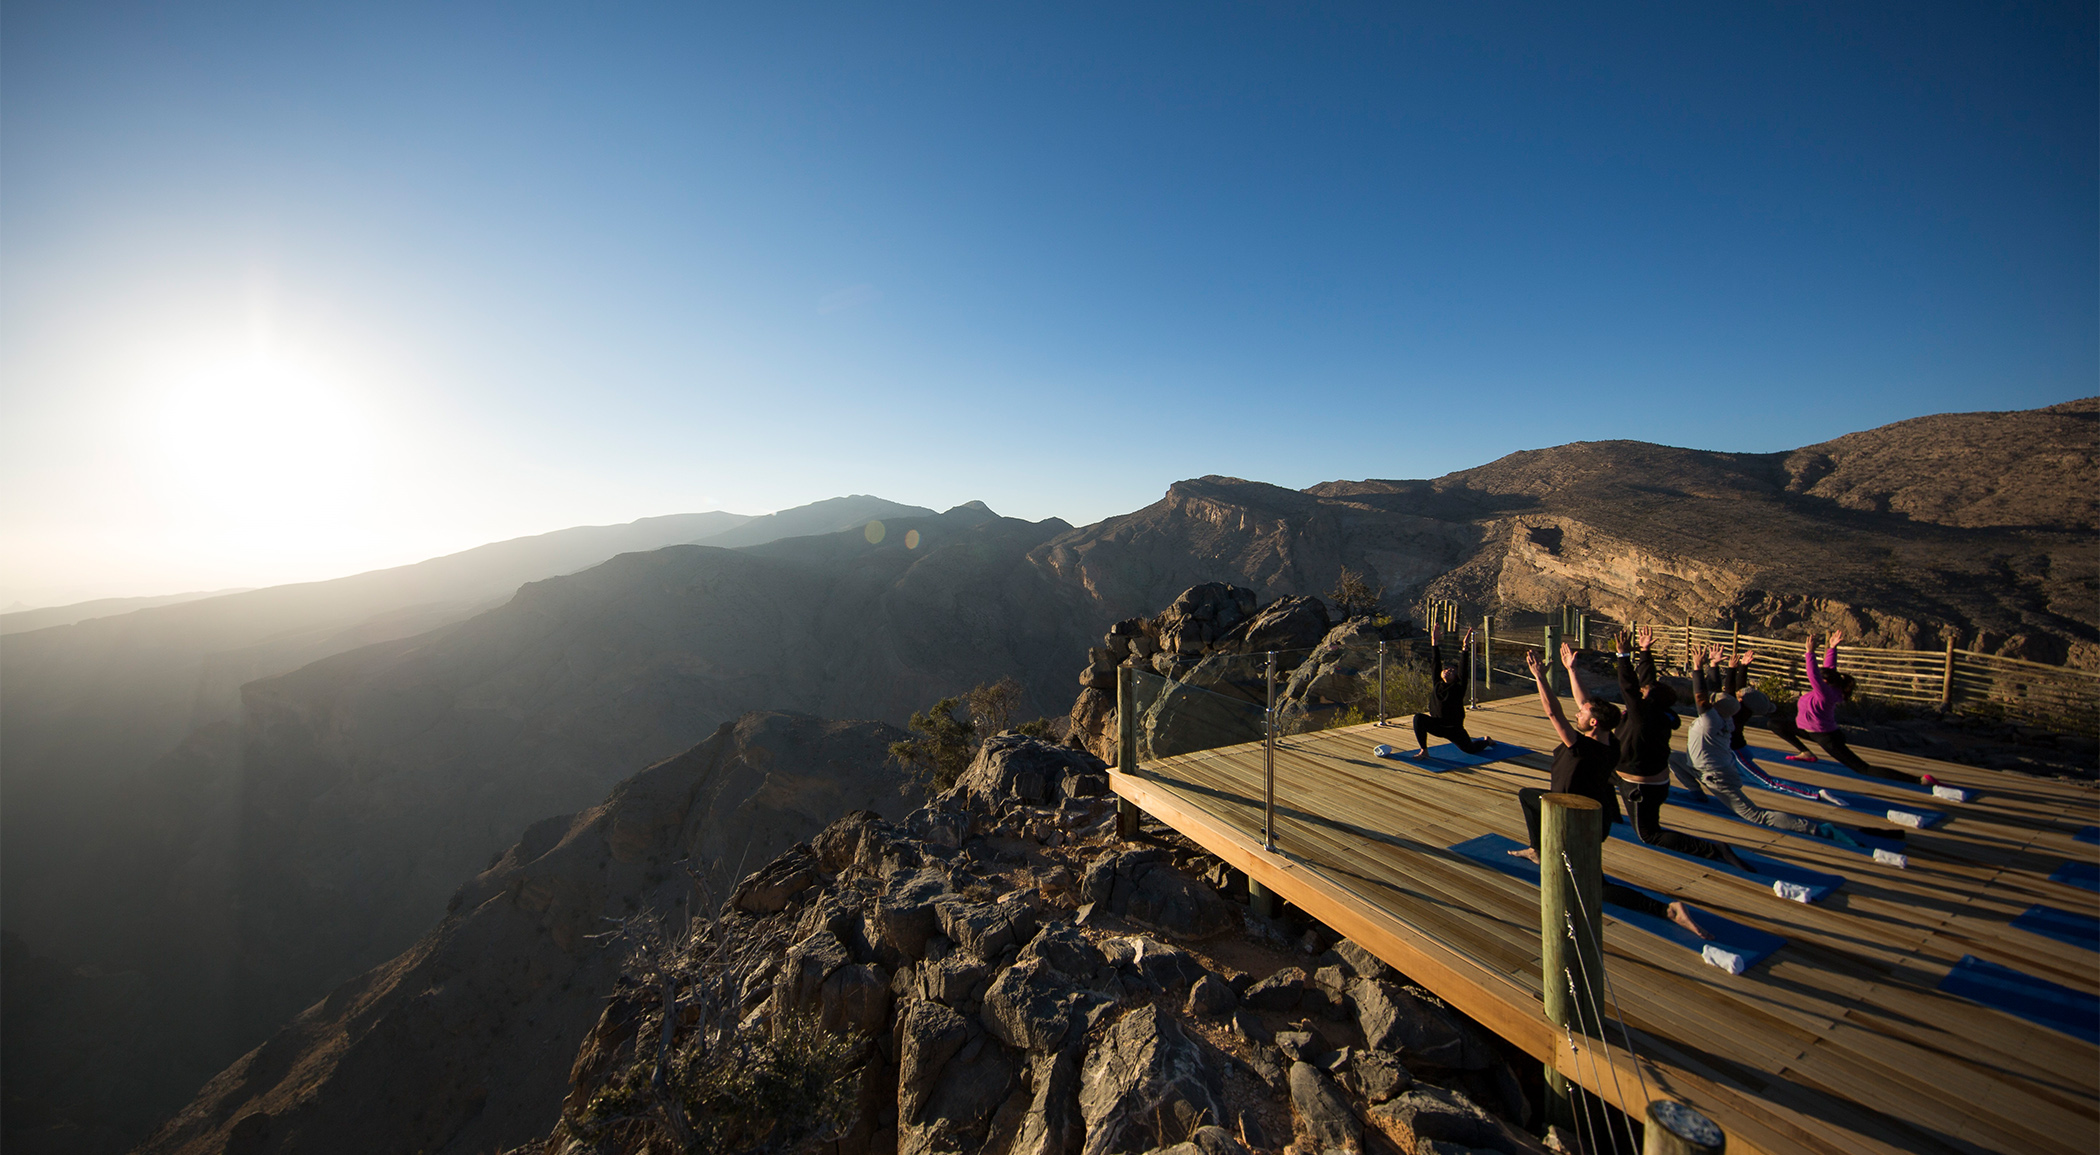 Oman - Alila Jabal Akhdar Honeymoon Wild Frontiers